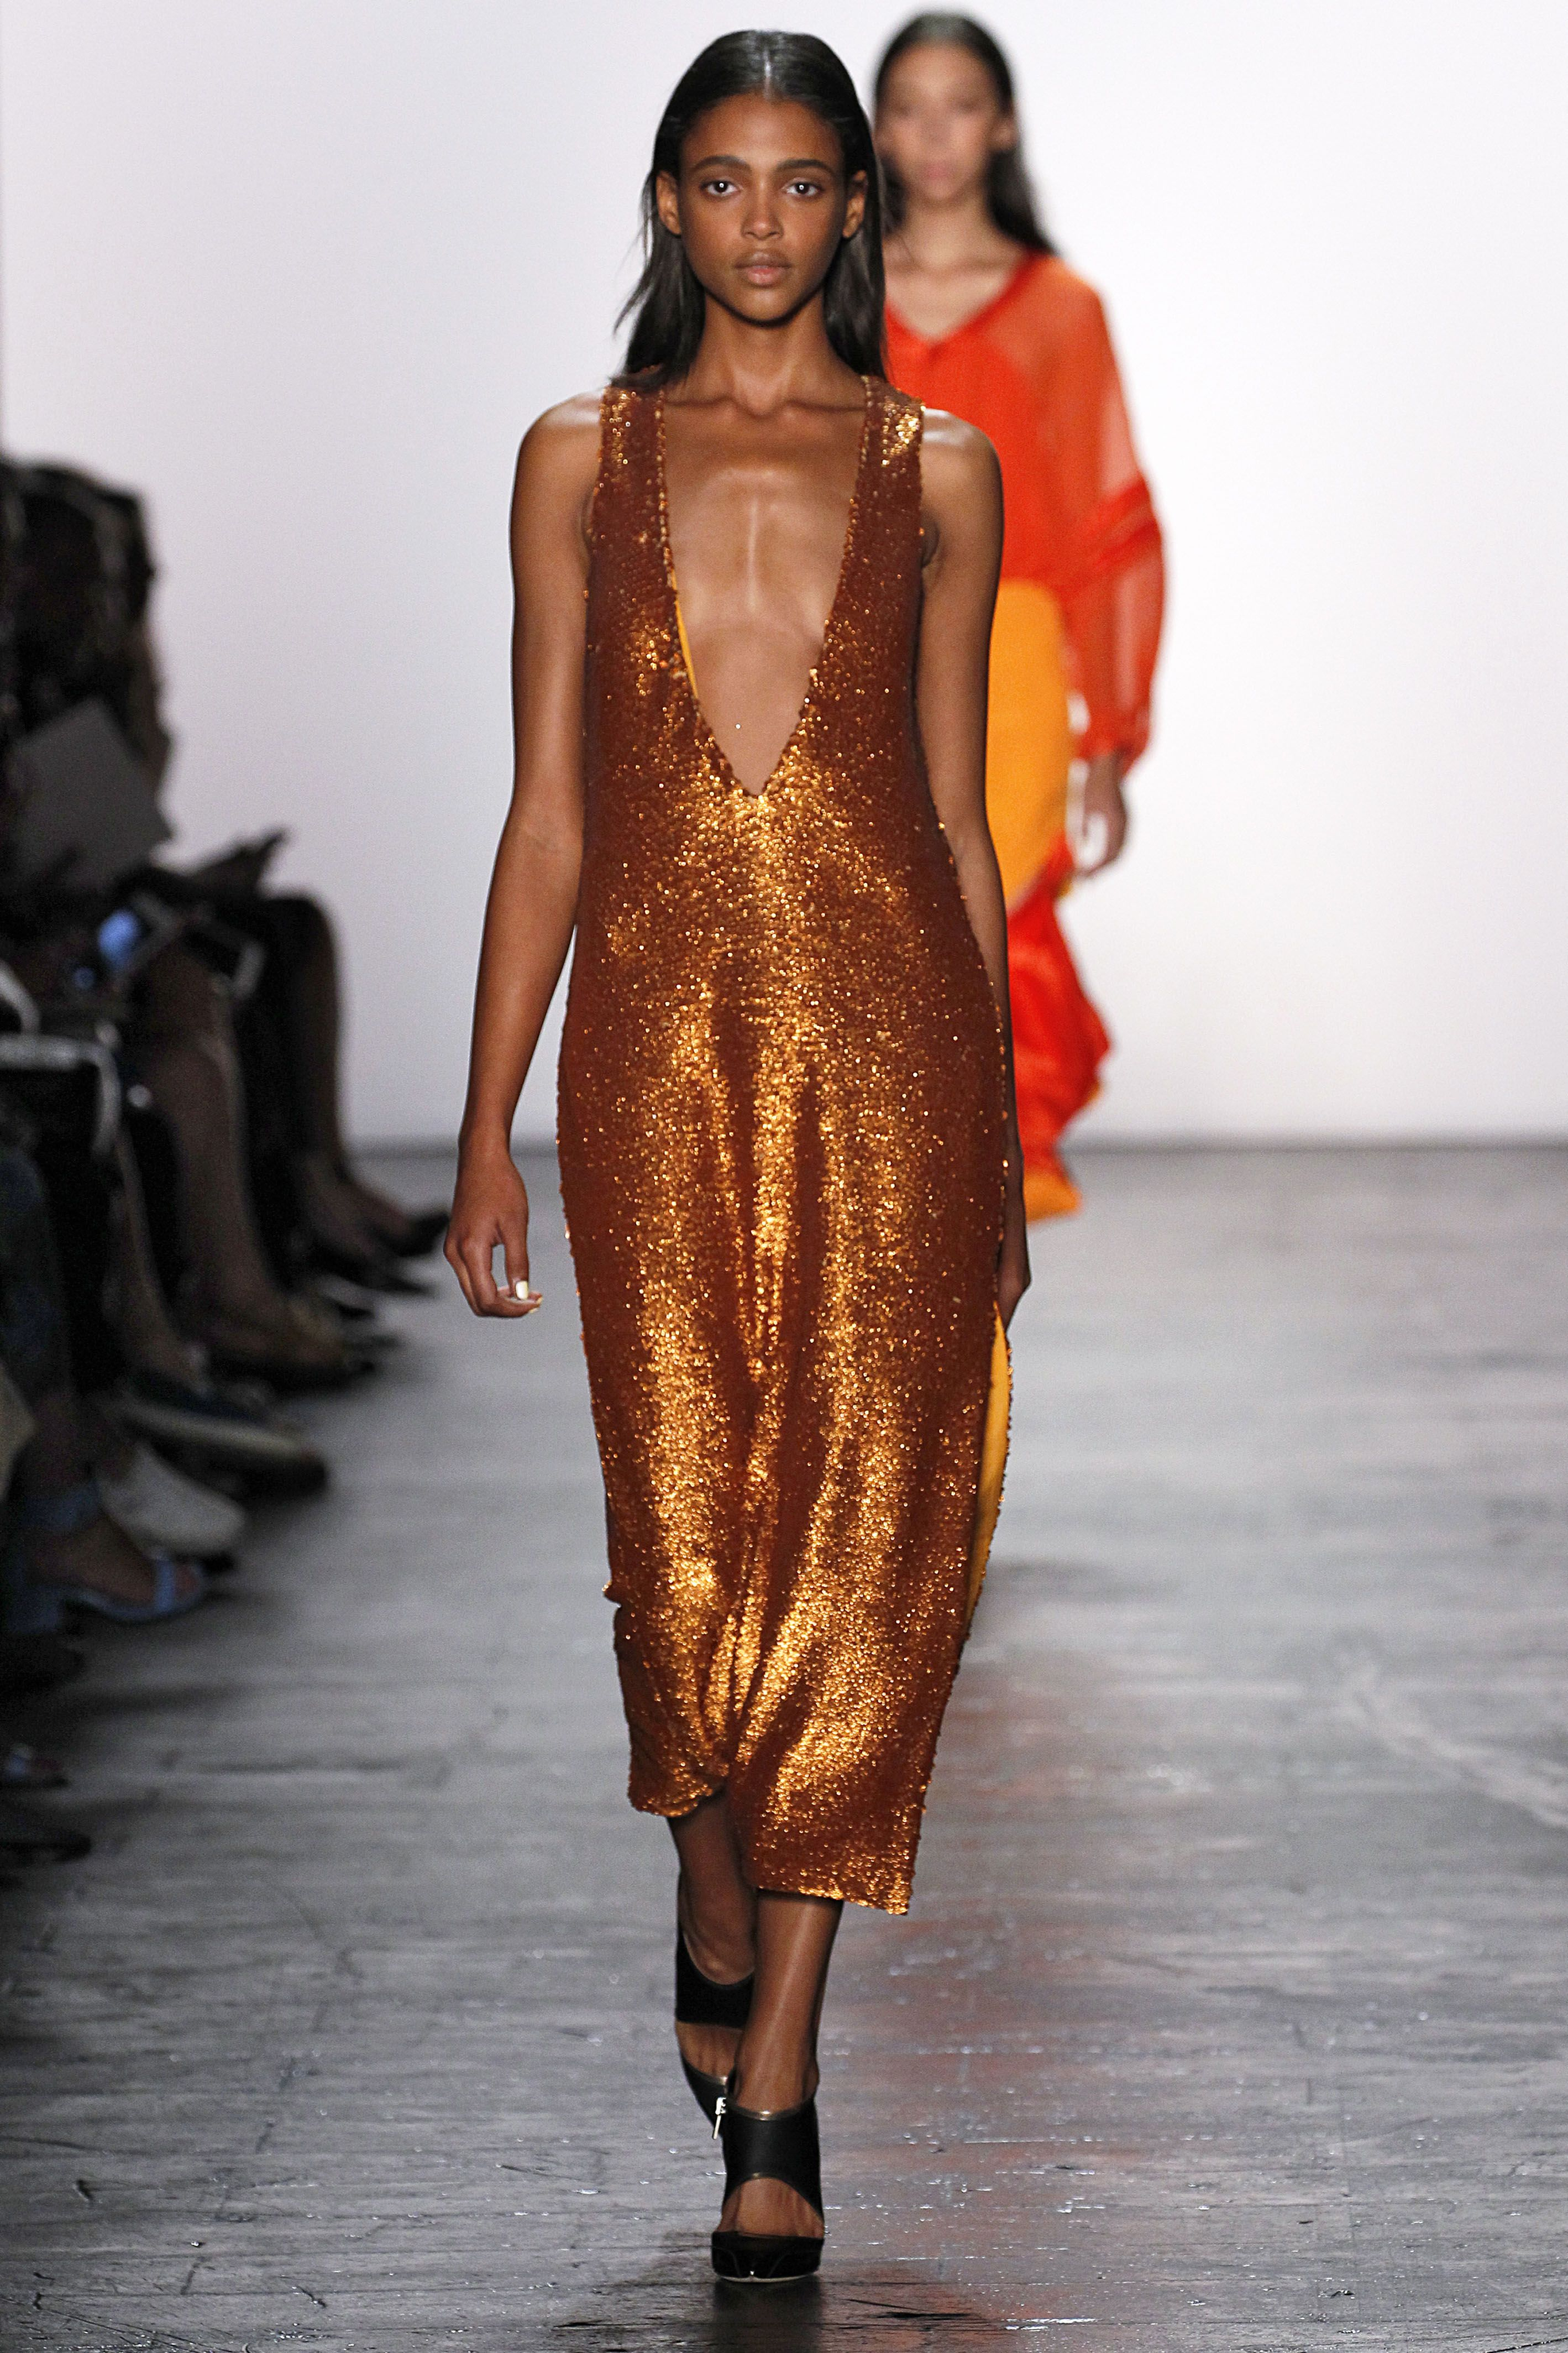 "<p>Fashion's been loosening up for a while now, so look for pieces cut 1) with longer hemlines and 2) farther away from the body, like this bronze Thakoon dress. Flow prevents the shininess from looking too clubby, plus leaves room for <a href=""http://www.marieclaire.com/fashion/news/g3343/weekly-chic-hacks/"">#putaturtleneckunderit</a>. </p>"